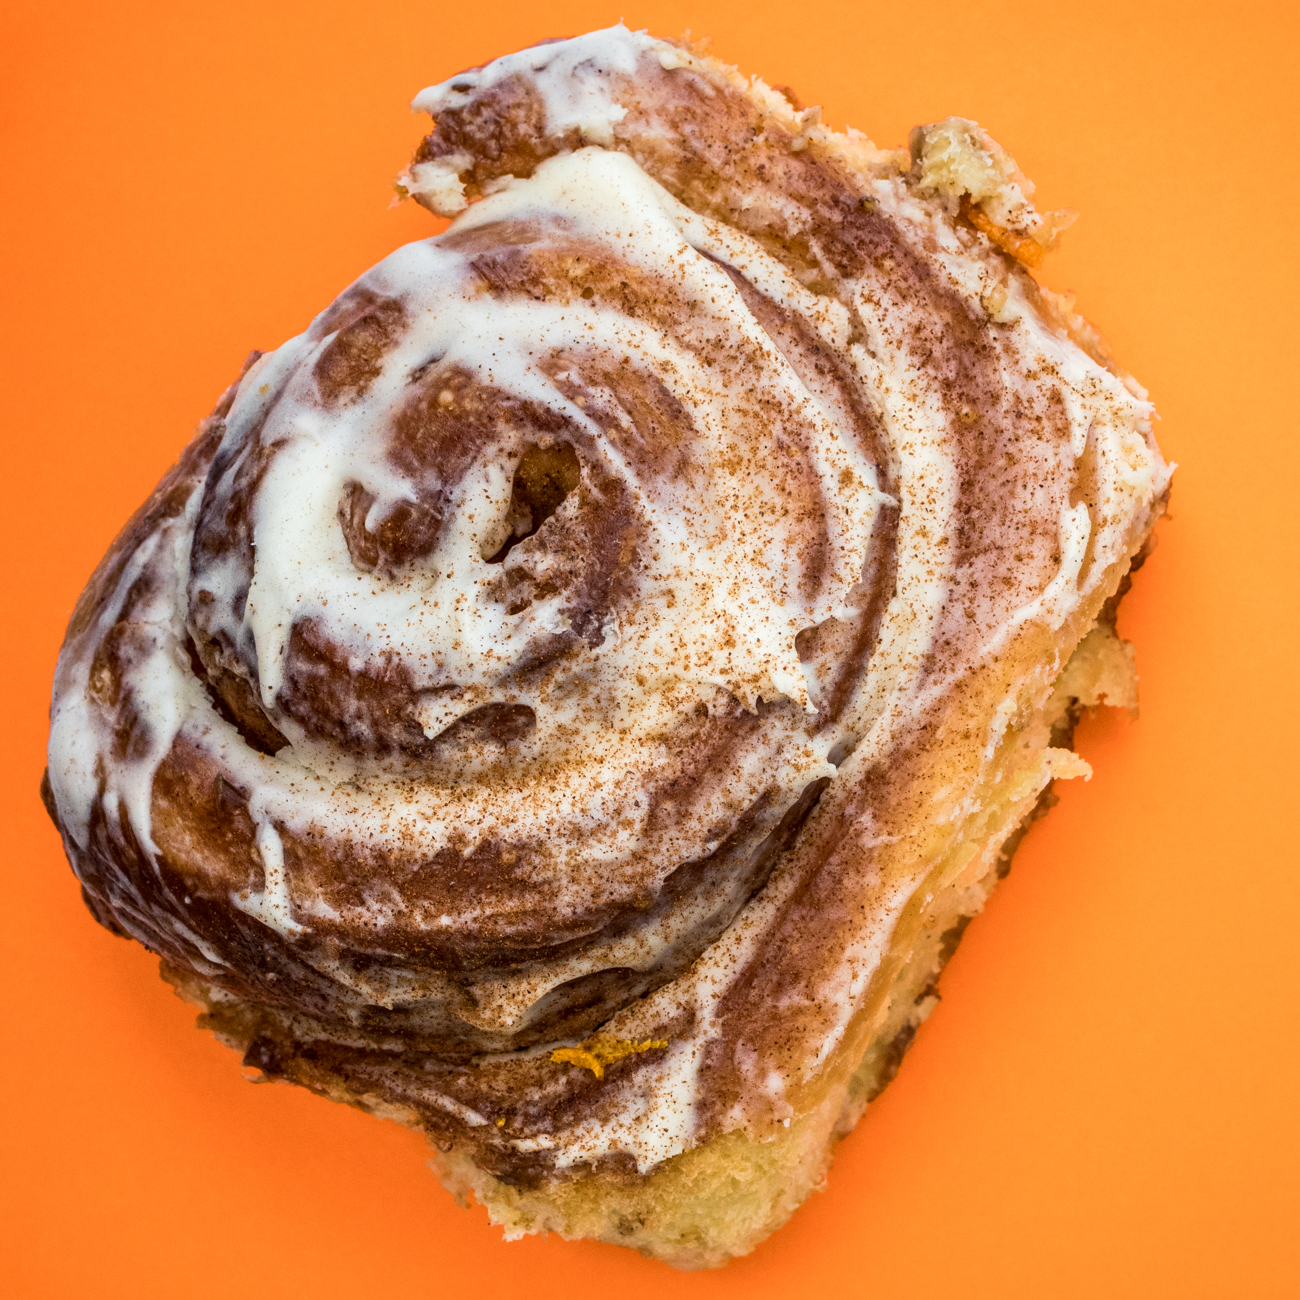 A cinnamon roll from{ }Brown Bear Bakery / Image: Catherine Viox{ }// Published: 1.4.20